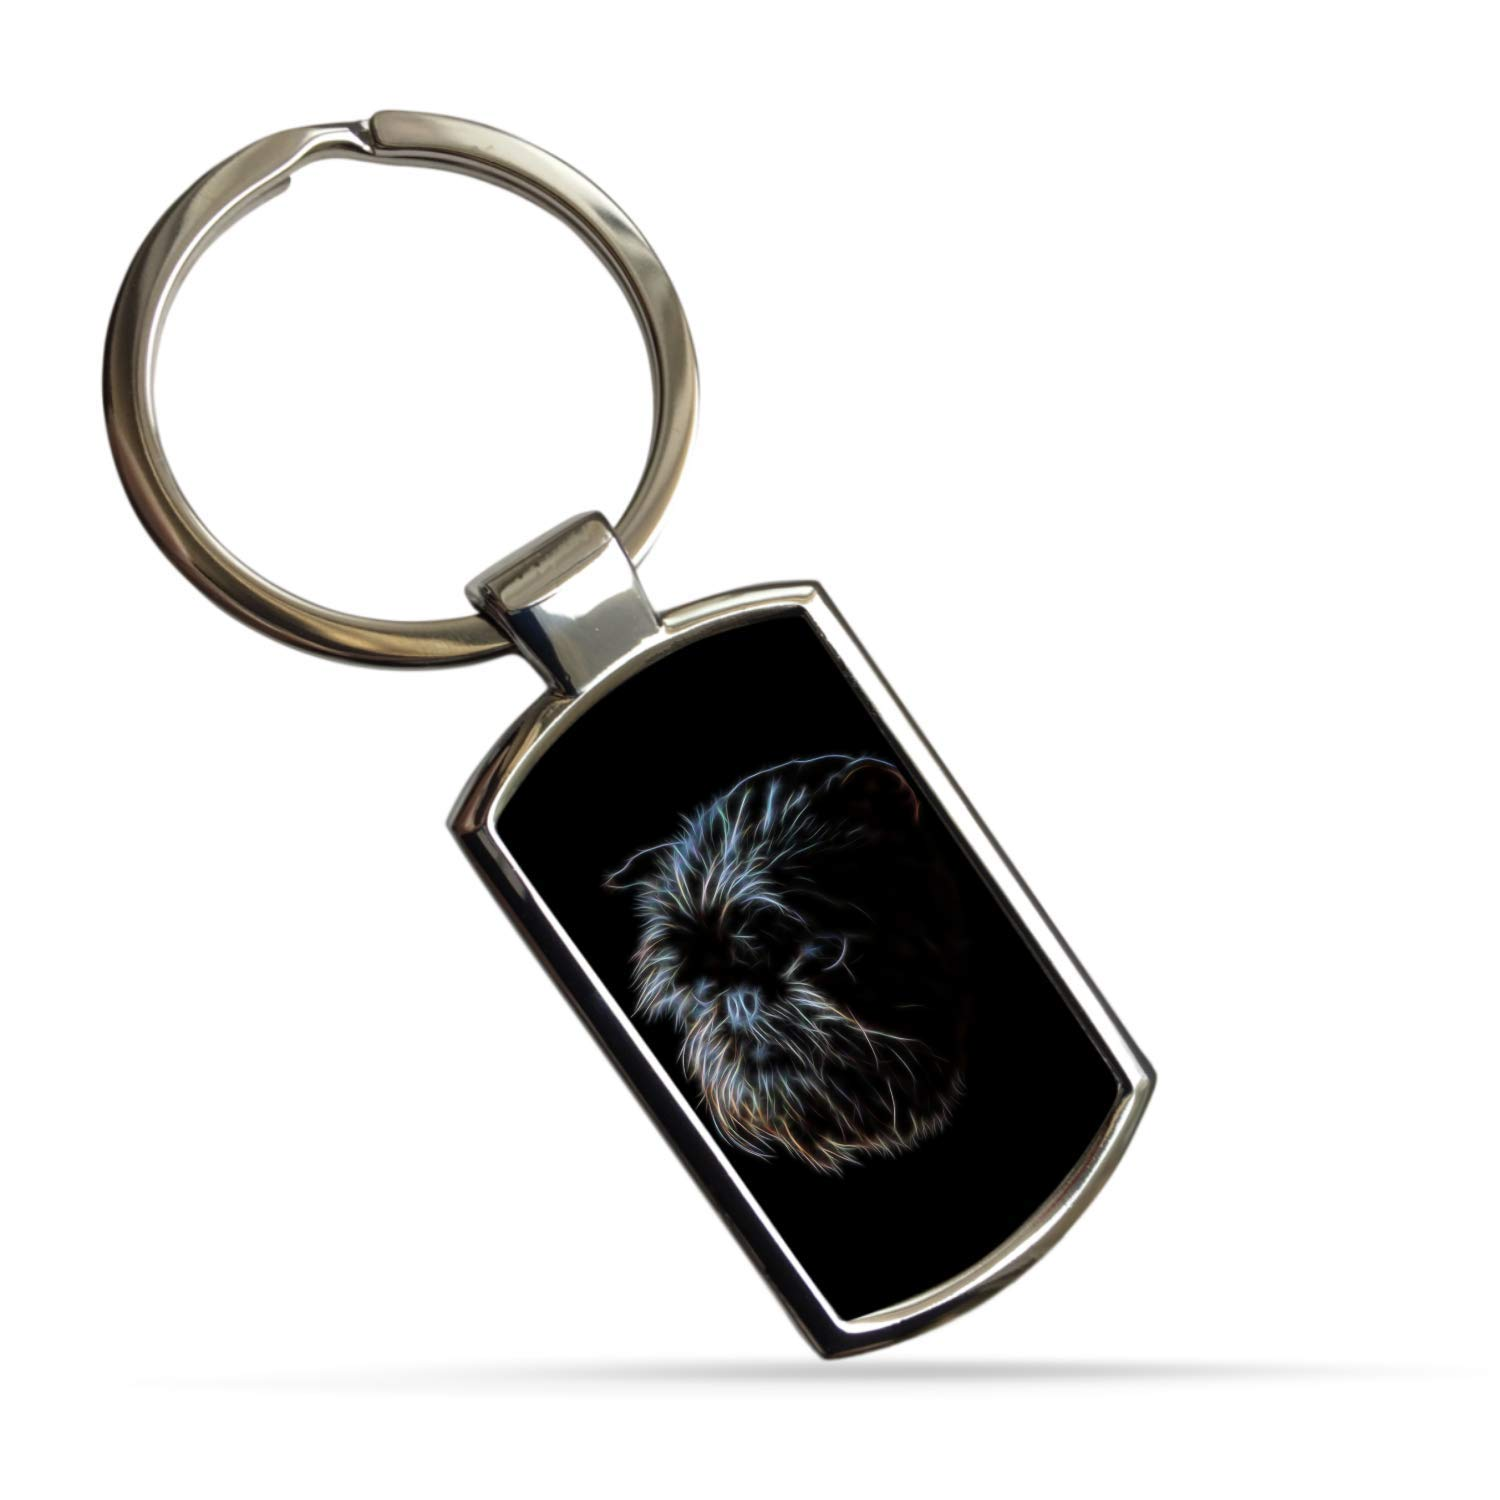 Fractal Artworks Affenpinscher Keyring with Stunning Fractal Art Design.